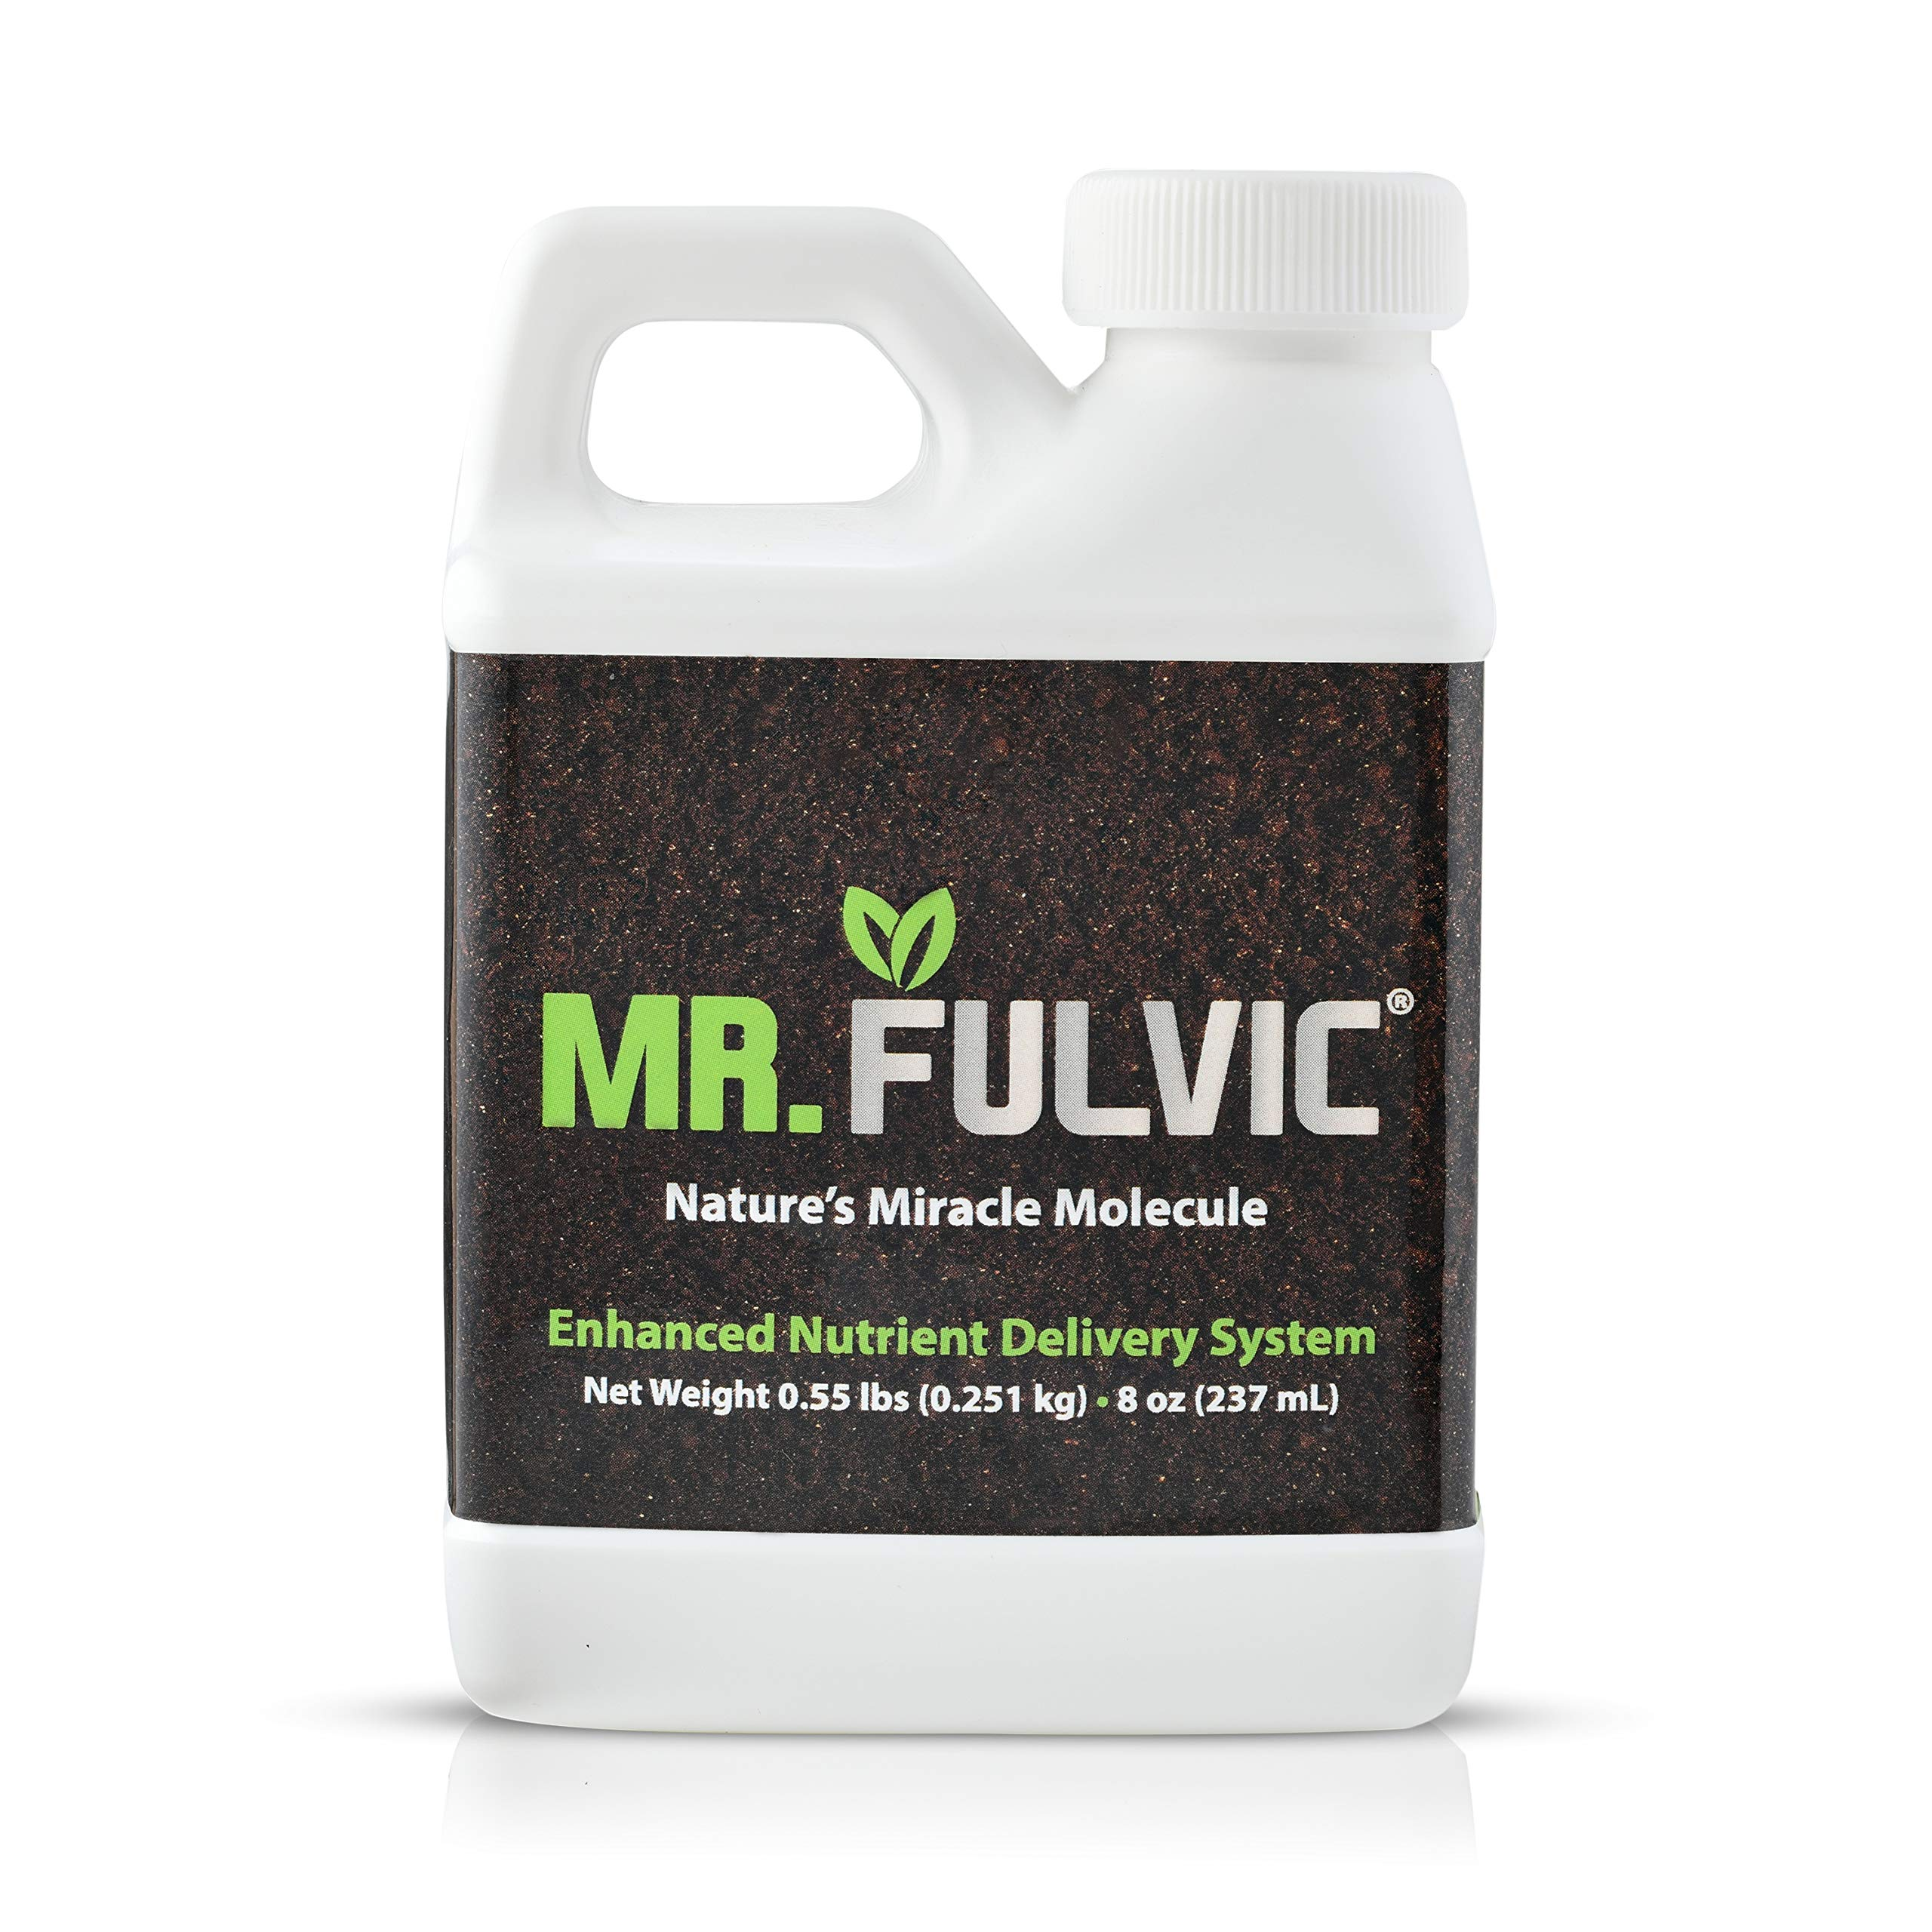 Organic Fulvic Acid Plant Amendment, Natural Humic Soil and Hydroponic Nutrient Enhancer - Lawn and Garden Growth, Plant Health